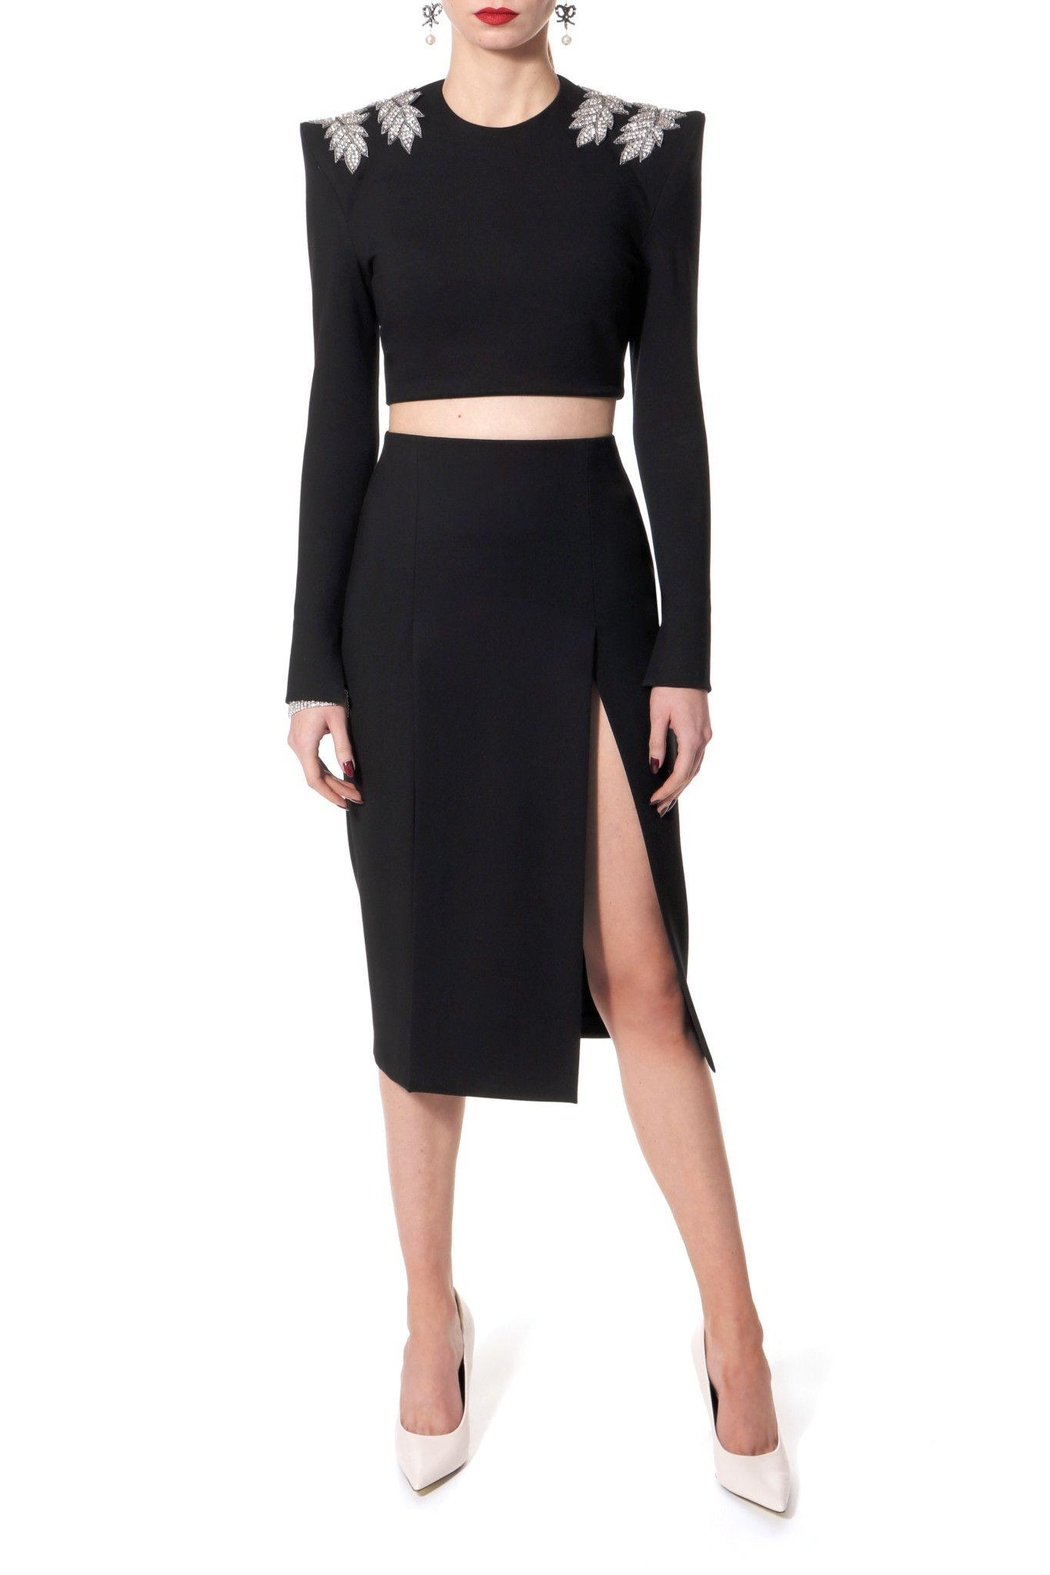 AGGI Skirt Salma Perle Noir - Side Cropped Image